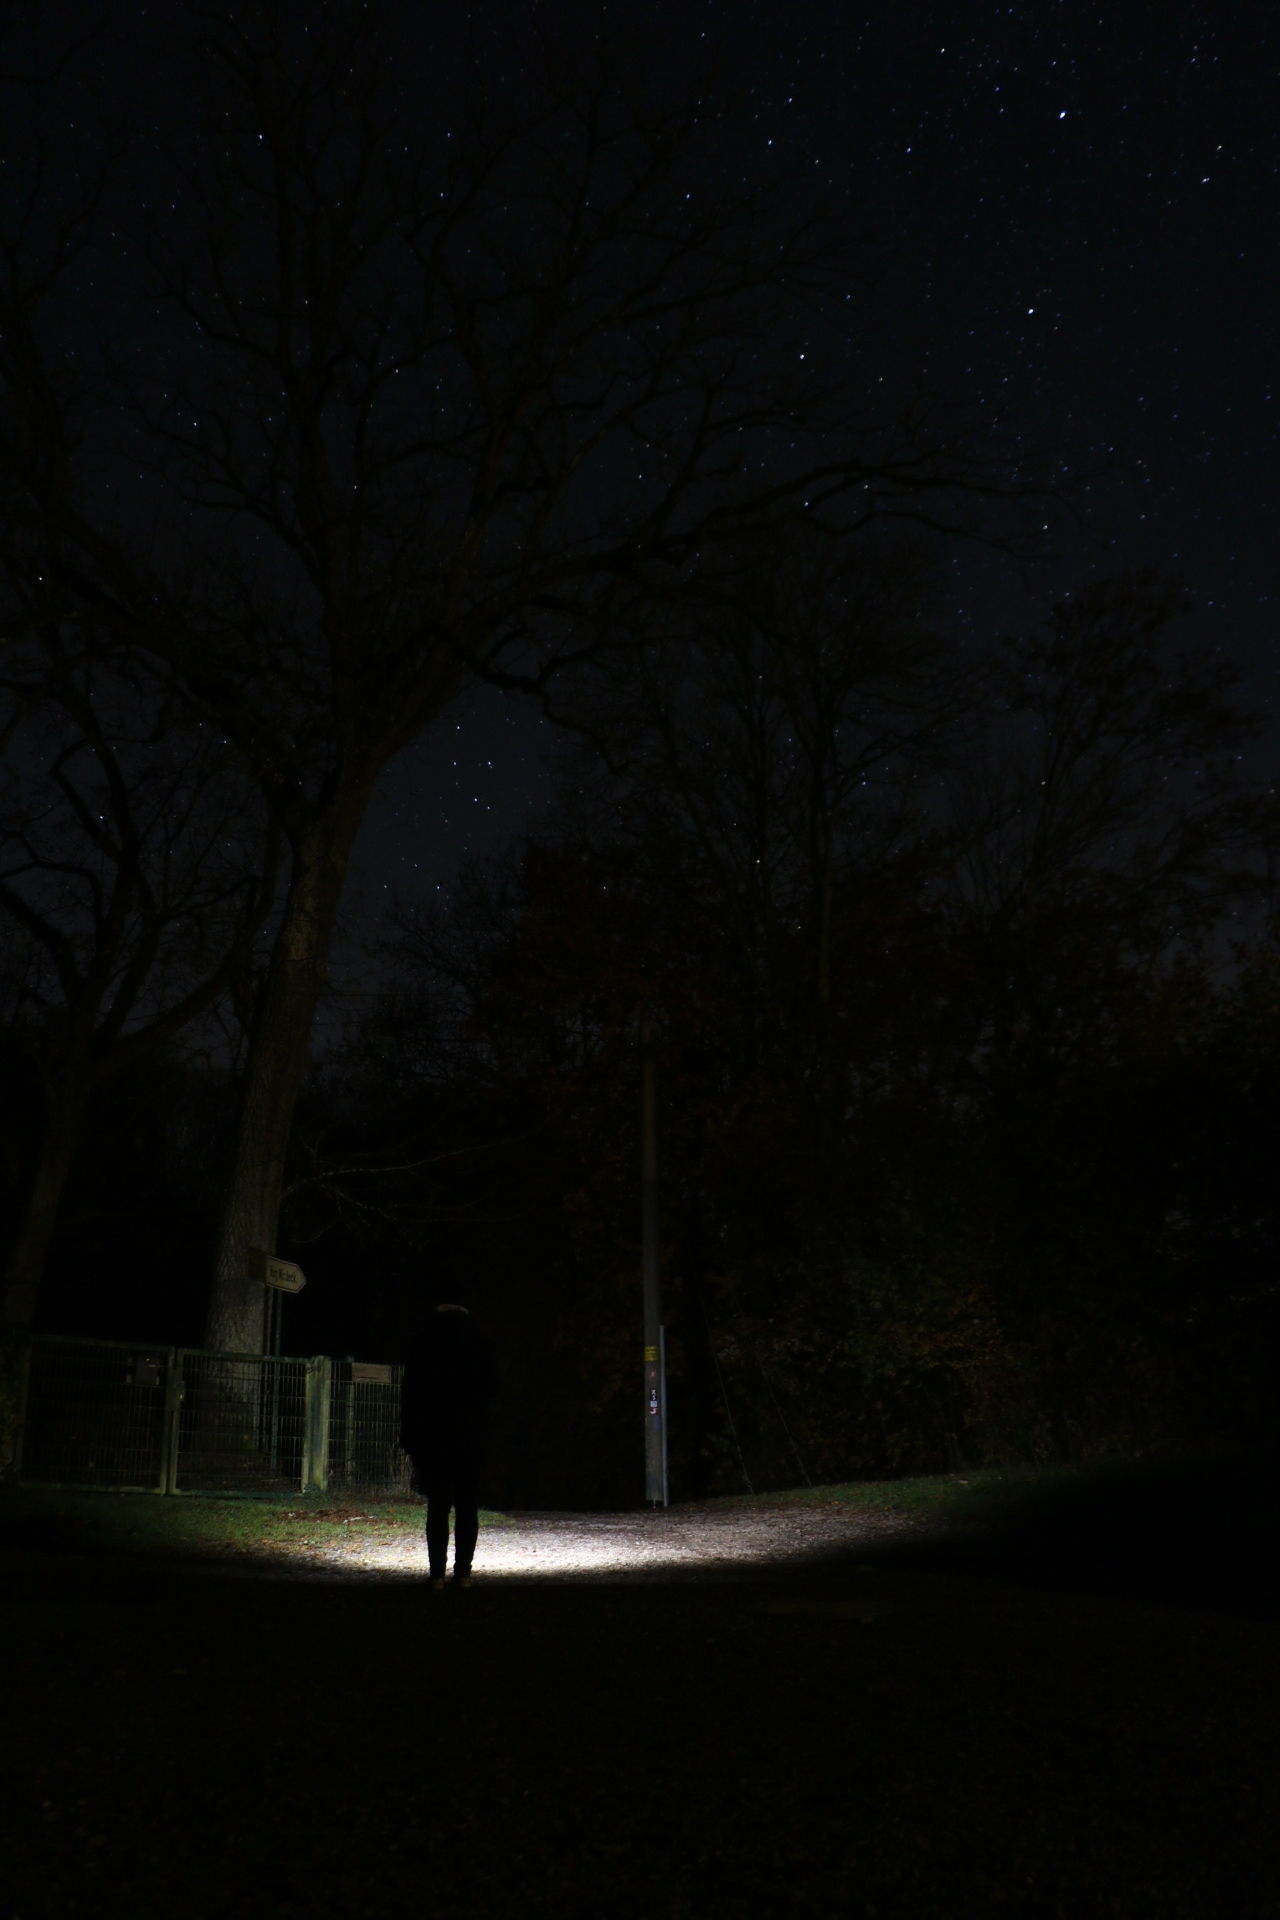 Silhouette Night Dark One Person One Man Only Full Length Only Men Men People Outdoors Tree Nature Adults Only Adult Sky Astronomy Stars Torch Torchlight